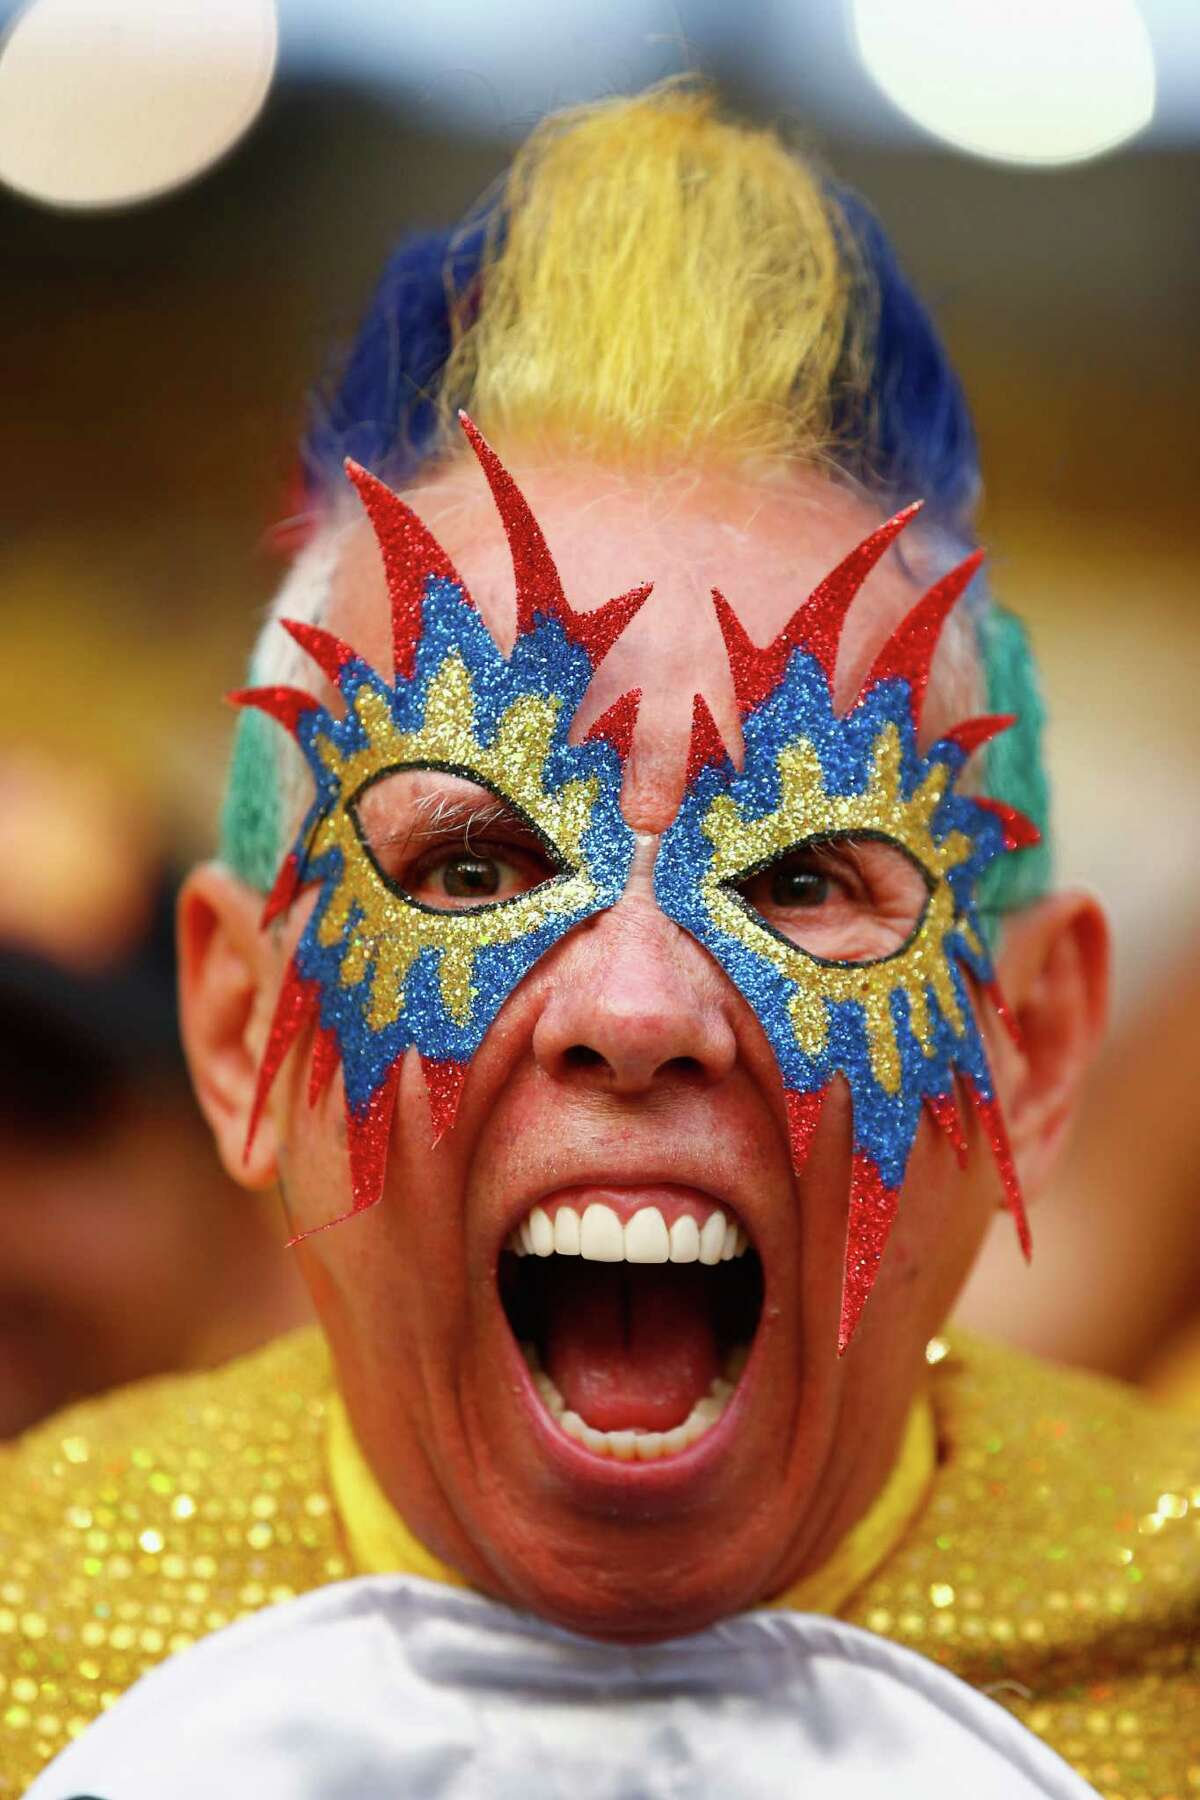 RIO DE JANEIRO, BRAZIL - JUNE 28: A Colombian fan shows his colours ahead of the 2014 FIFA World Cup Brazil round of 16 match between Colombia and Uruguay at Maracana on June 28, 2014 in Rio de Janeiro, Brazil.